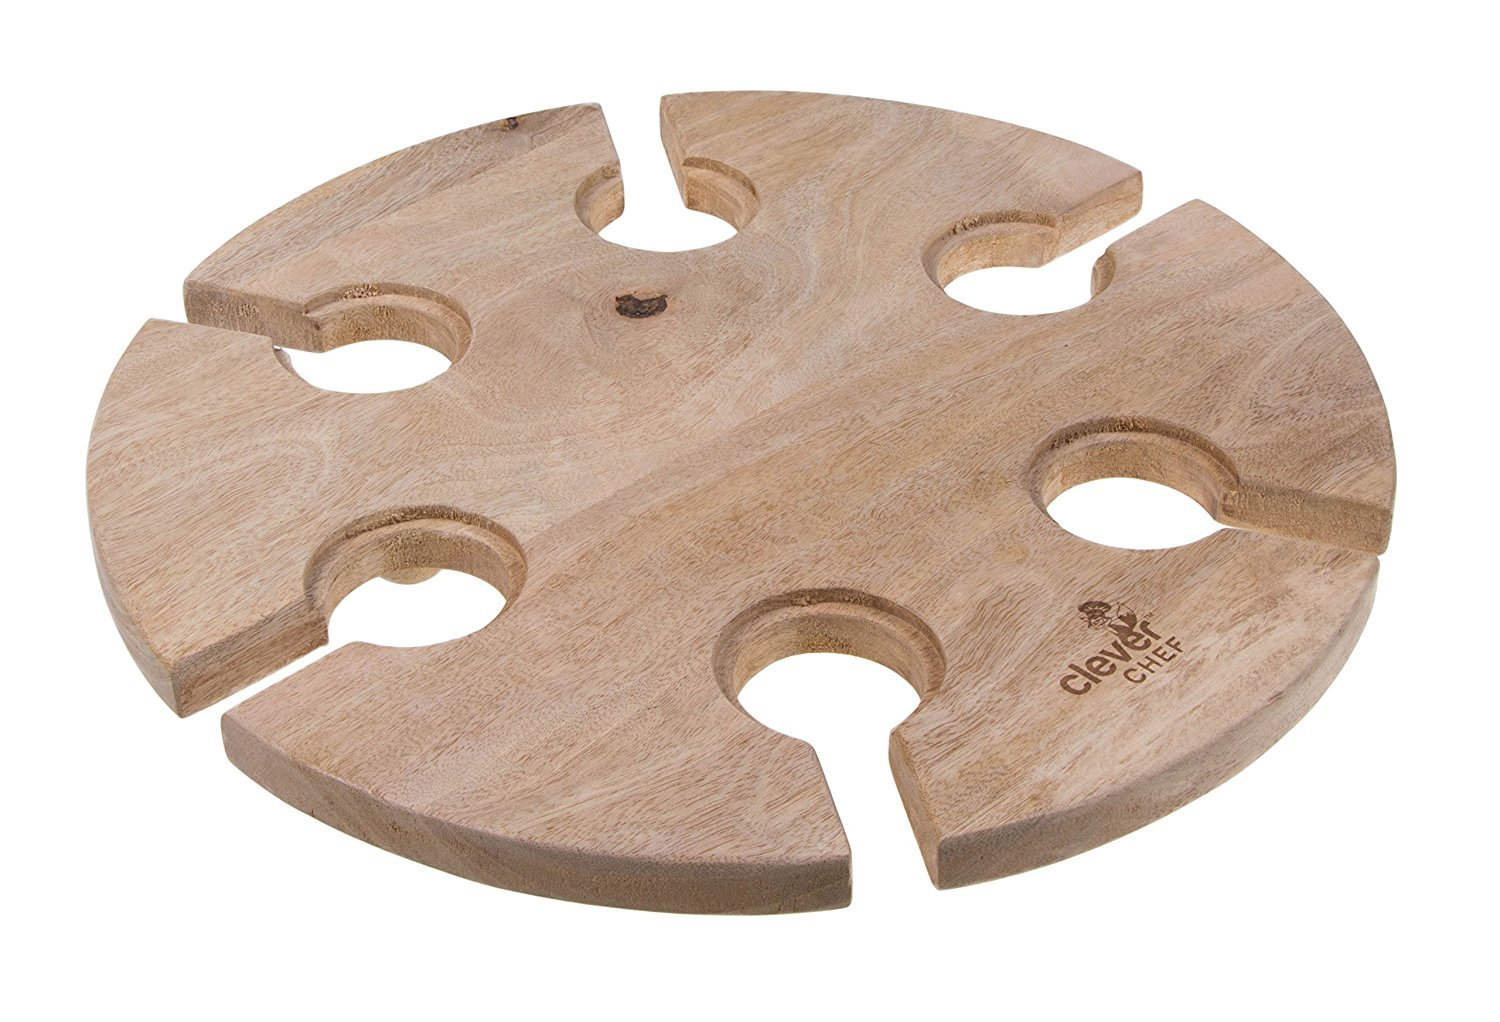 Premium Wine Glass Serving Table by Clever Chef | Made of Mango Wood | Holds 6 Wine Glasses Clever Creations COMIN18JU032854